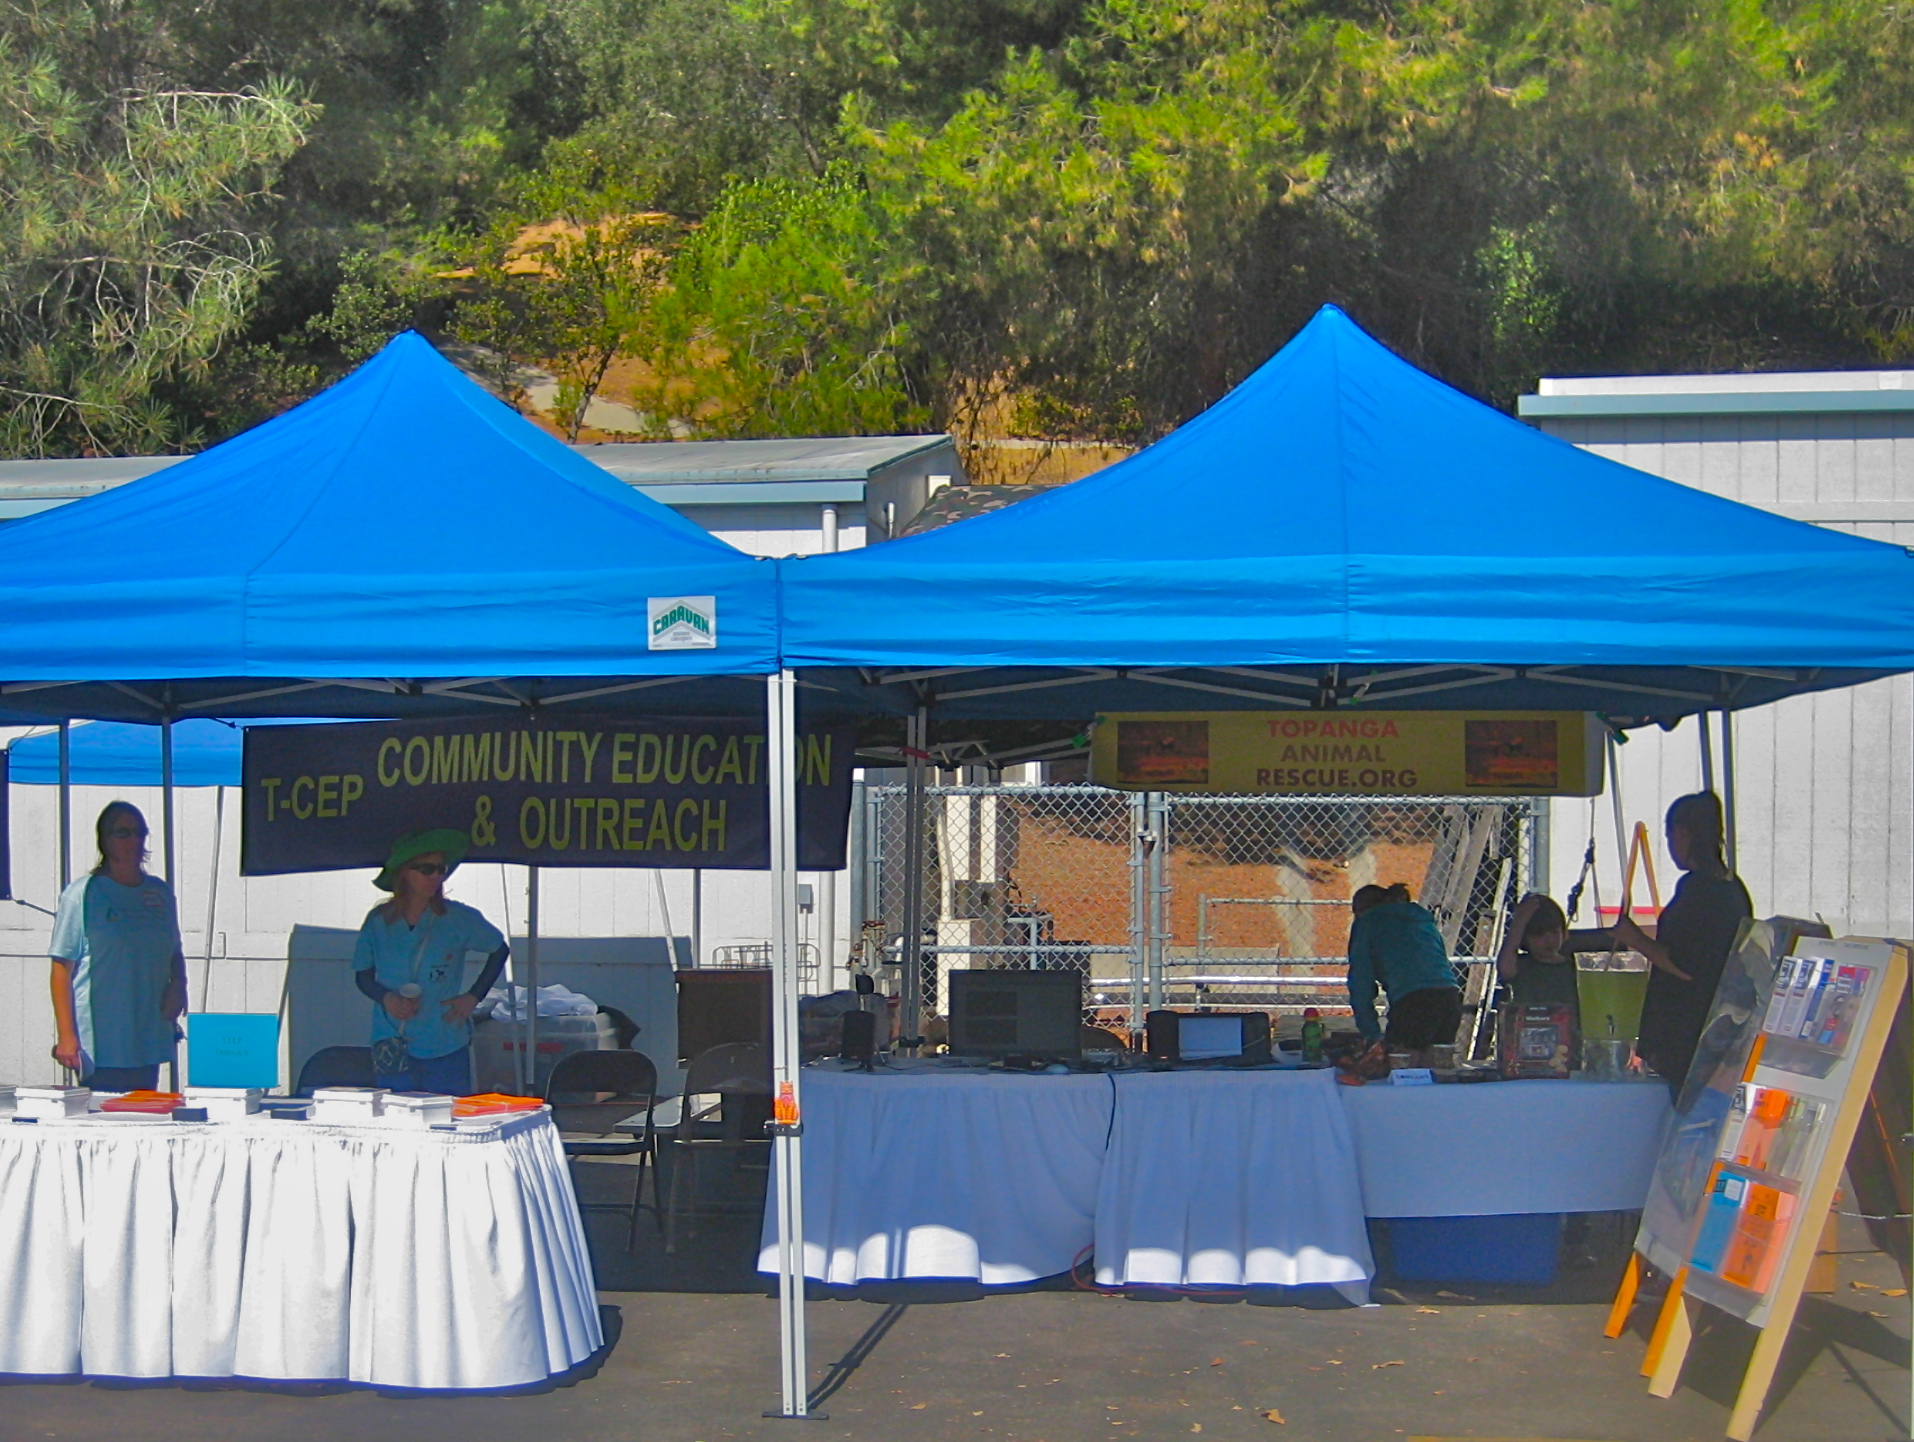 Our booths at the T-CEP fair, Topanga Animal rescue and T-CEP Outreach